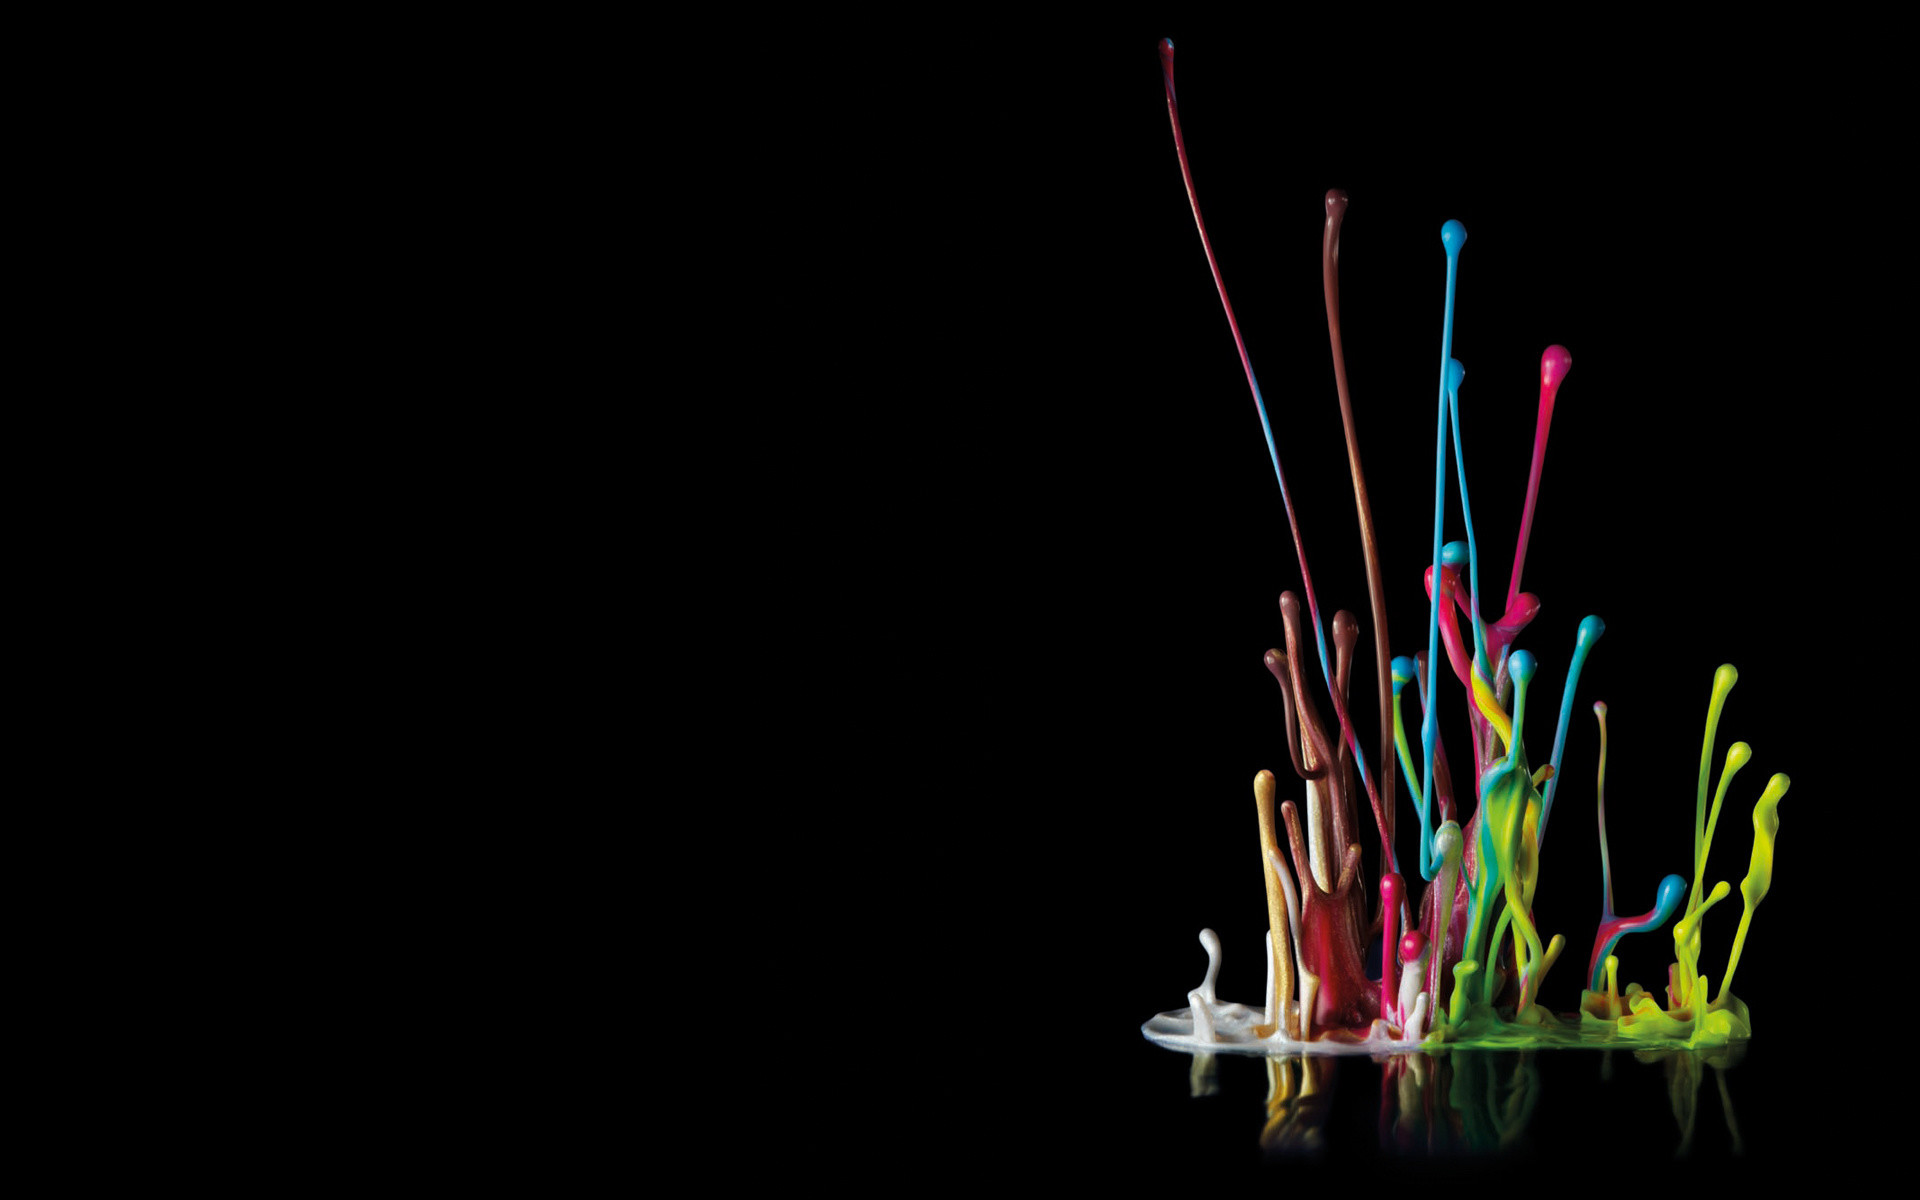 paint, sound sculpture, graphics desktop wallpaper » 3D » GoodWP.com